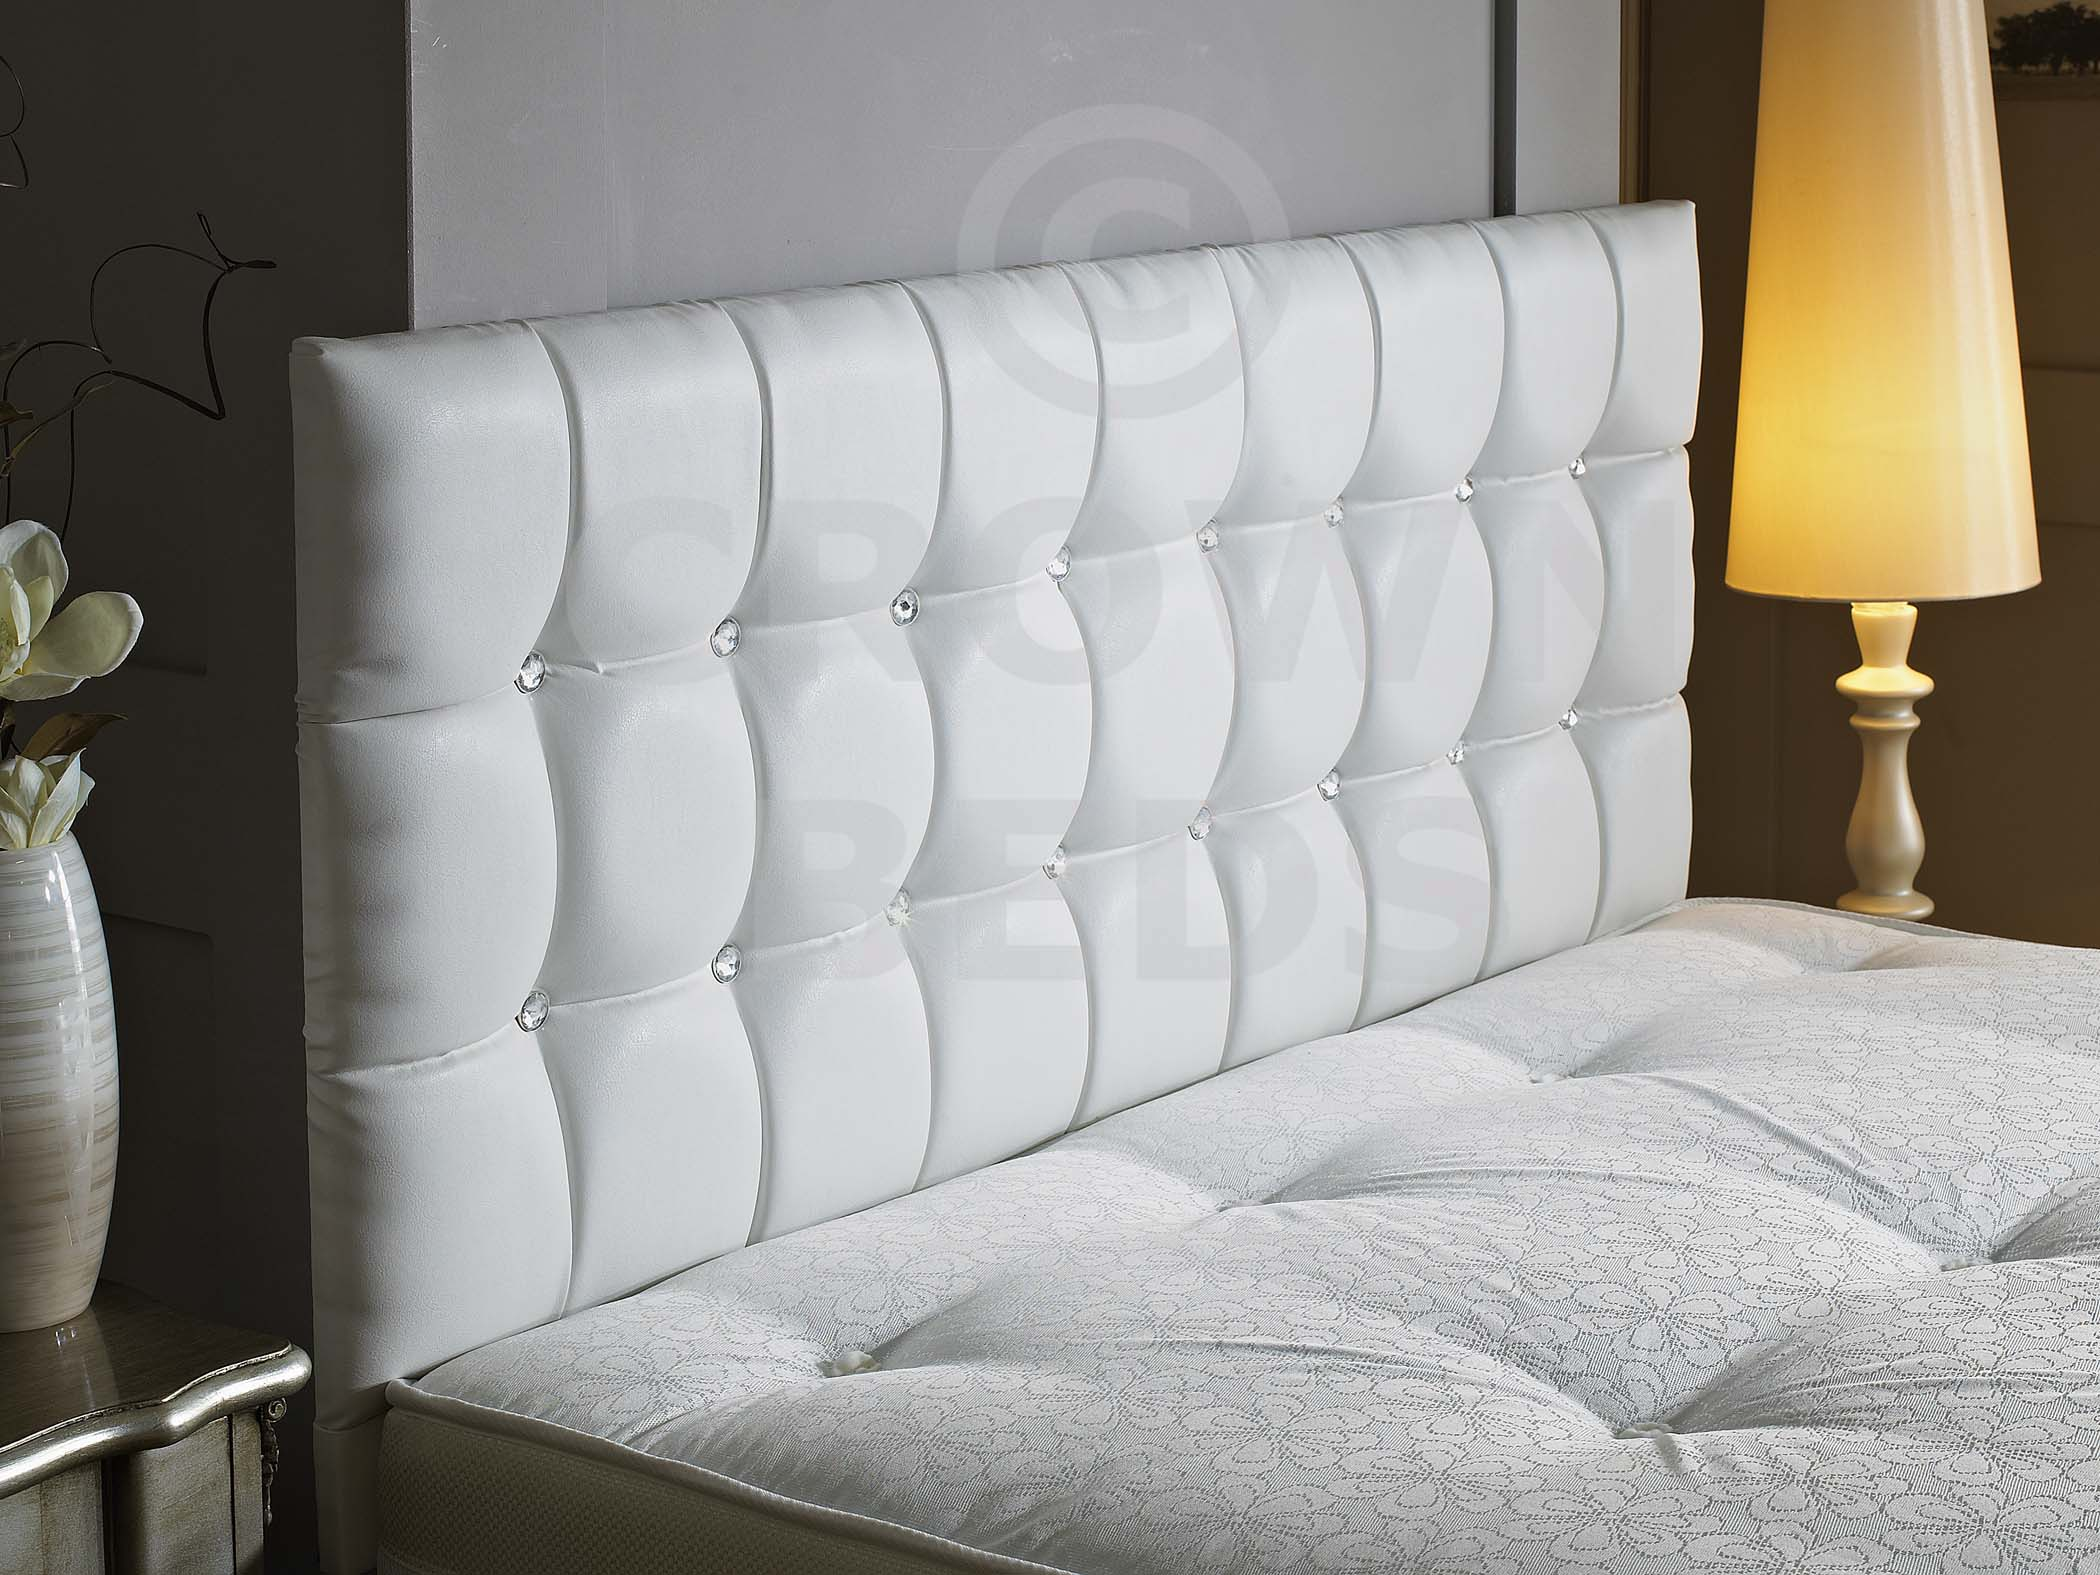 upholstered leather white pink king set tall diamond covers tufted bedroom headboard